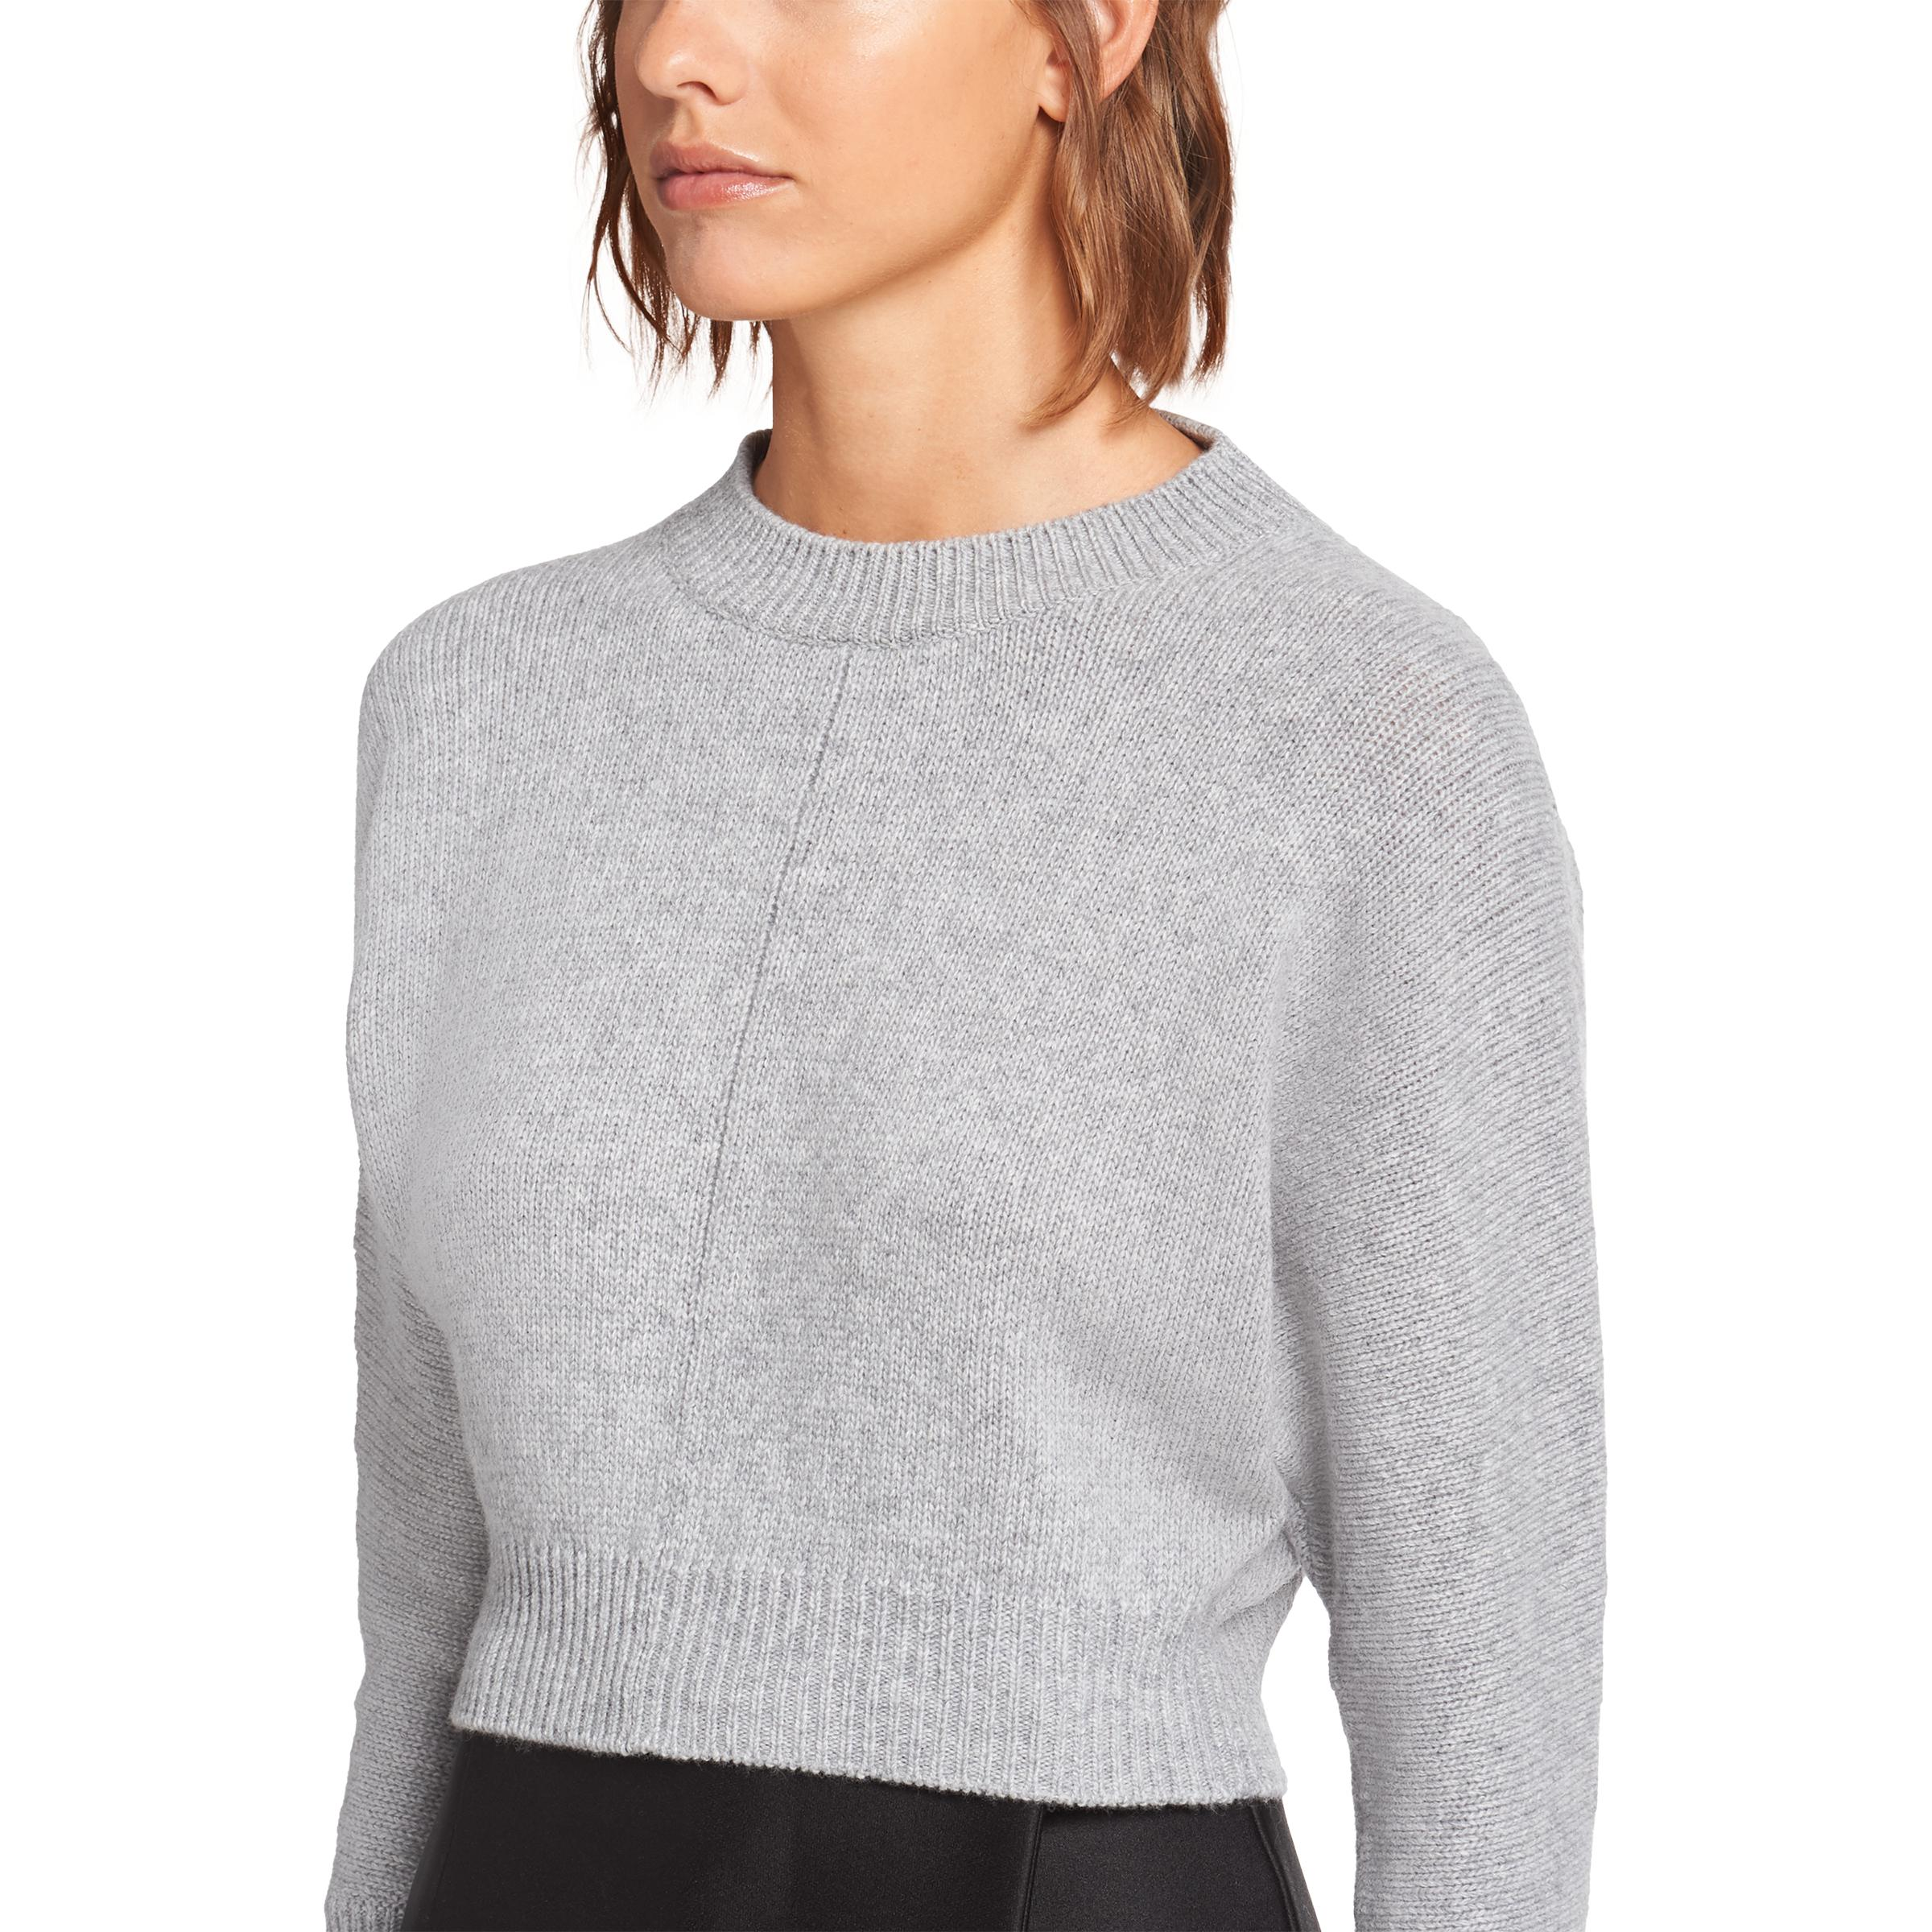 Cashmere Wool Crew-neck Sweater Women Marble Gray 4